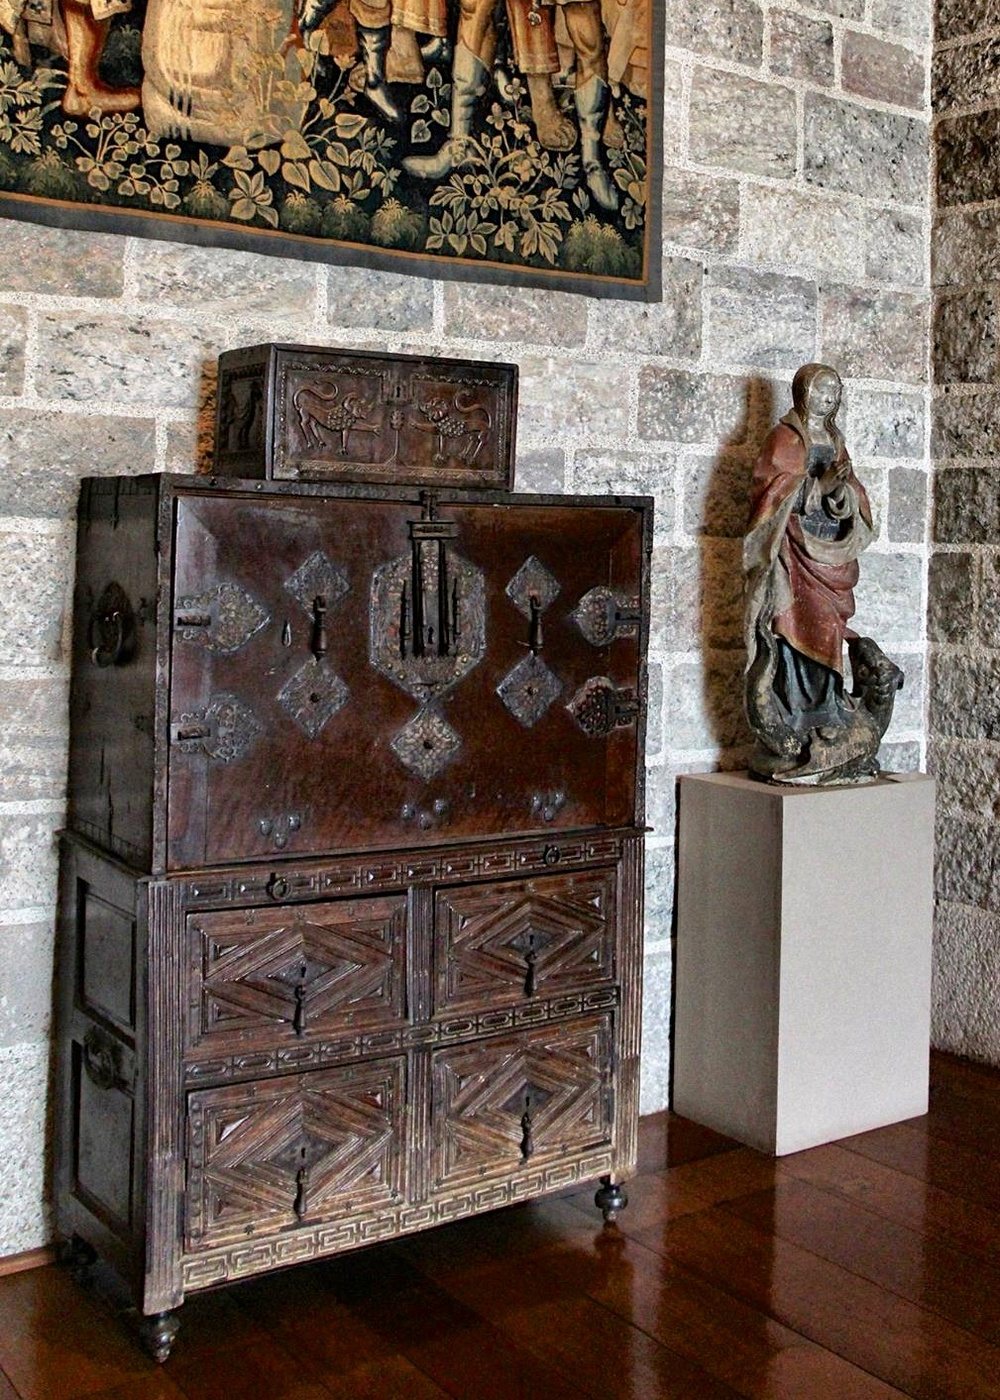 Antique Spanish furniture in Glencairn's Upper Hall